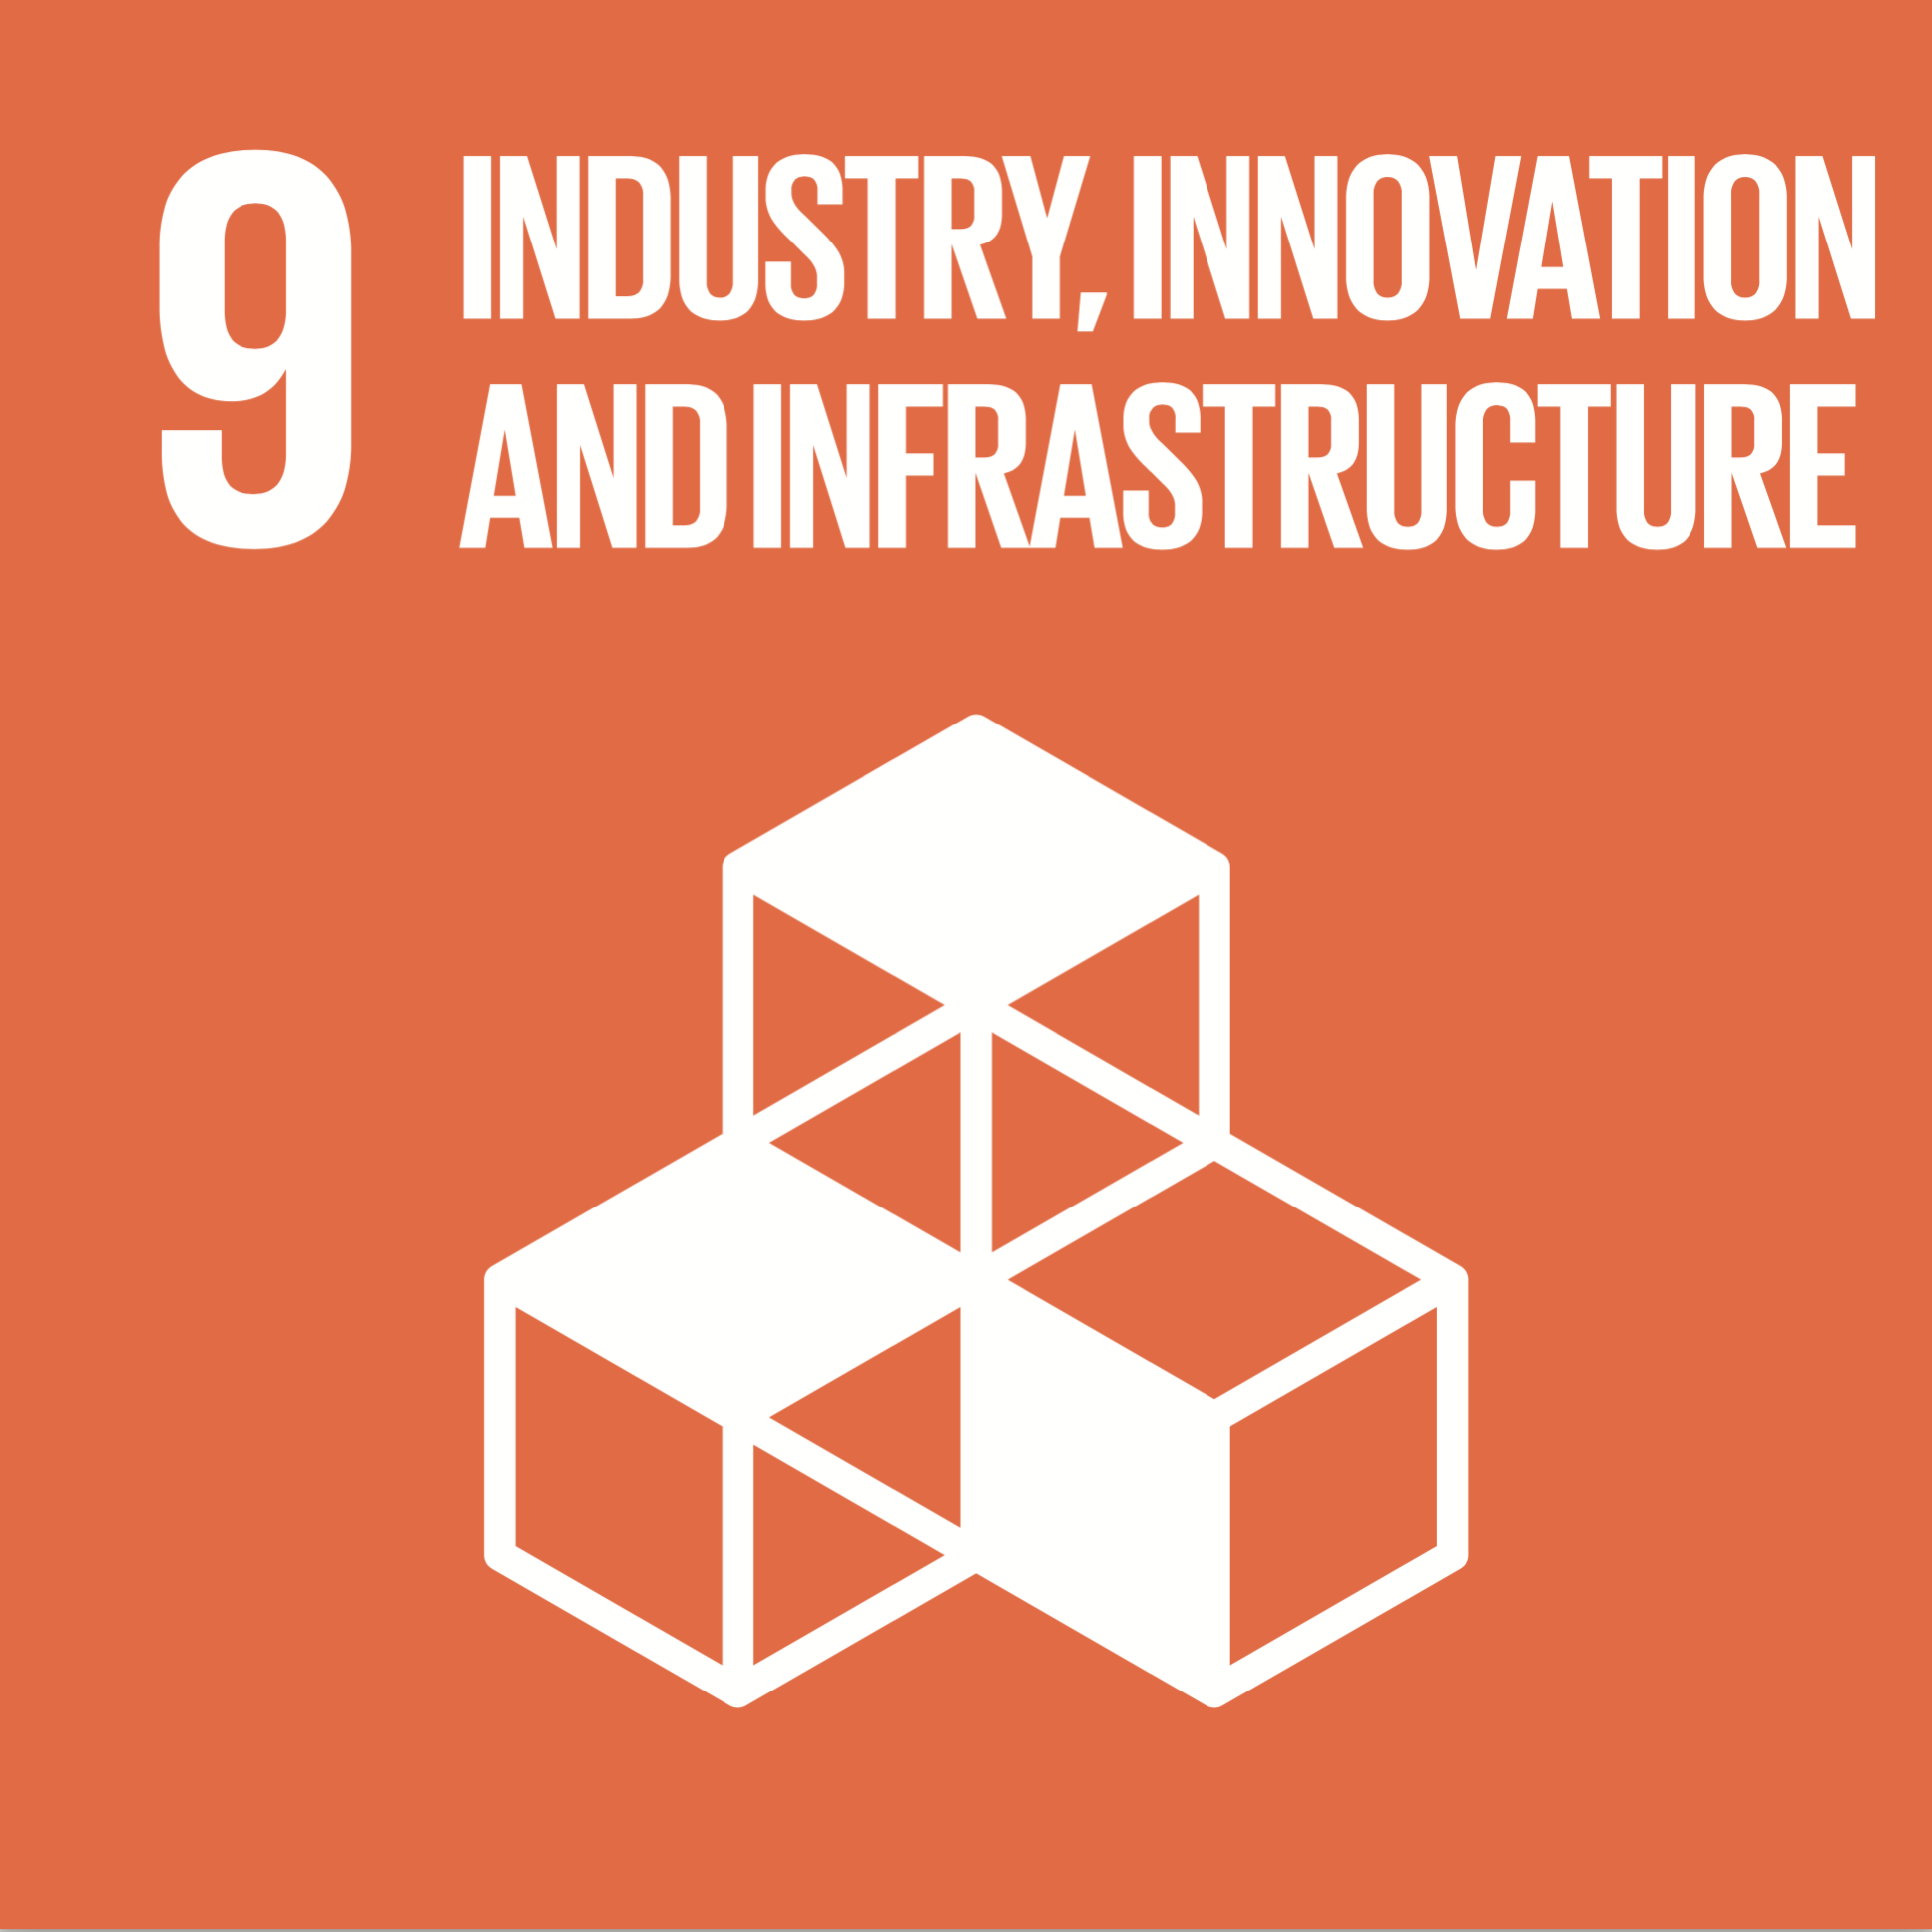 Sustainable Development Goal 9